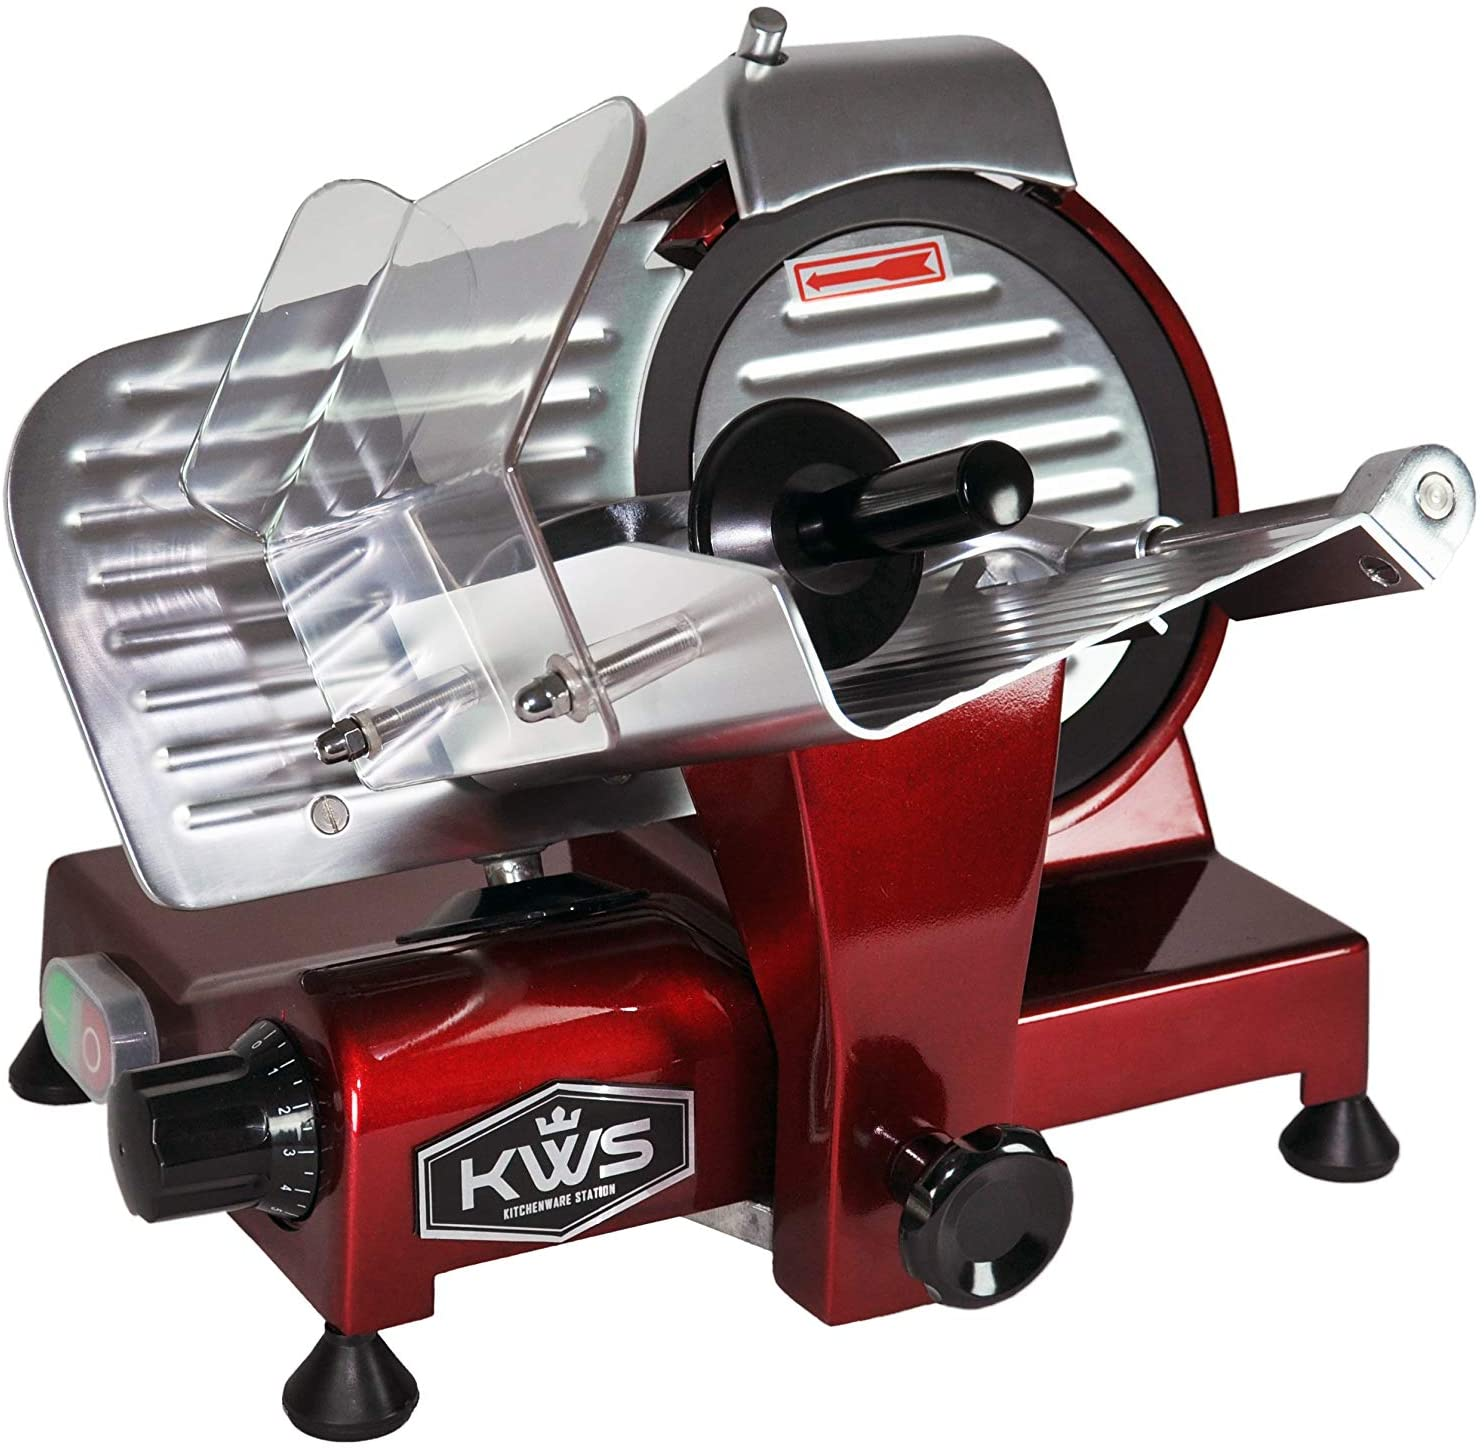 KWS MS-6RT Premium 200w Electric Meat Slicer Teflo in Don't miss the campaign Now on sale 6-Inch Red